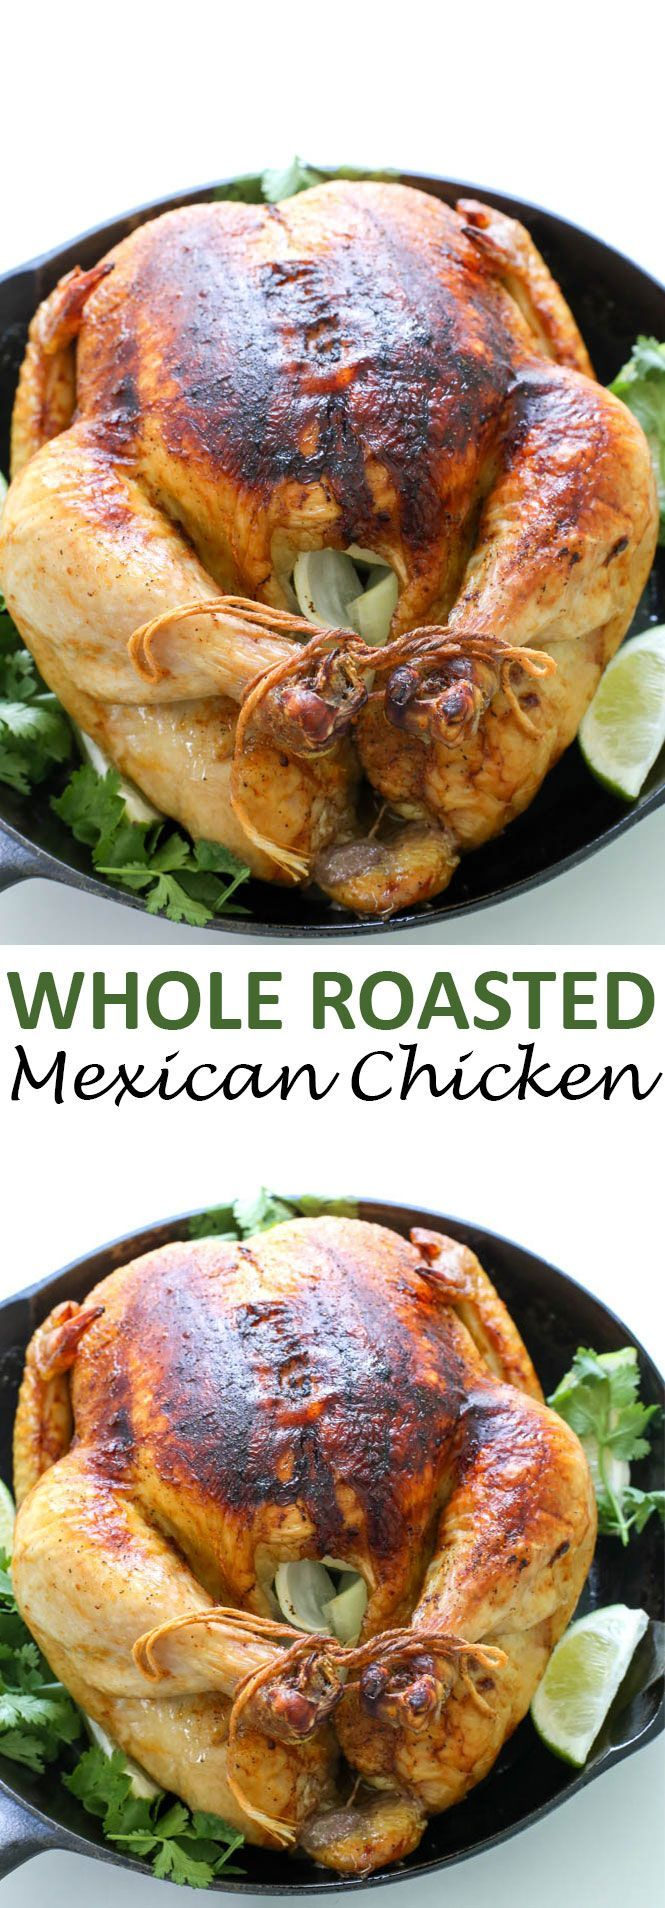 Whole Roasted Mexican Chicken with Chipotle, Lime and Cilantro. Tender, juicy and loaded with flavor. Plus a Giveaway! Enter below to win a Sharp Convection Microwave!